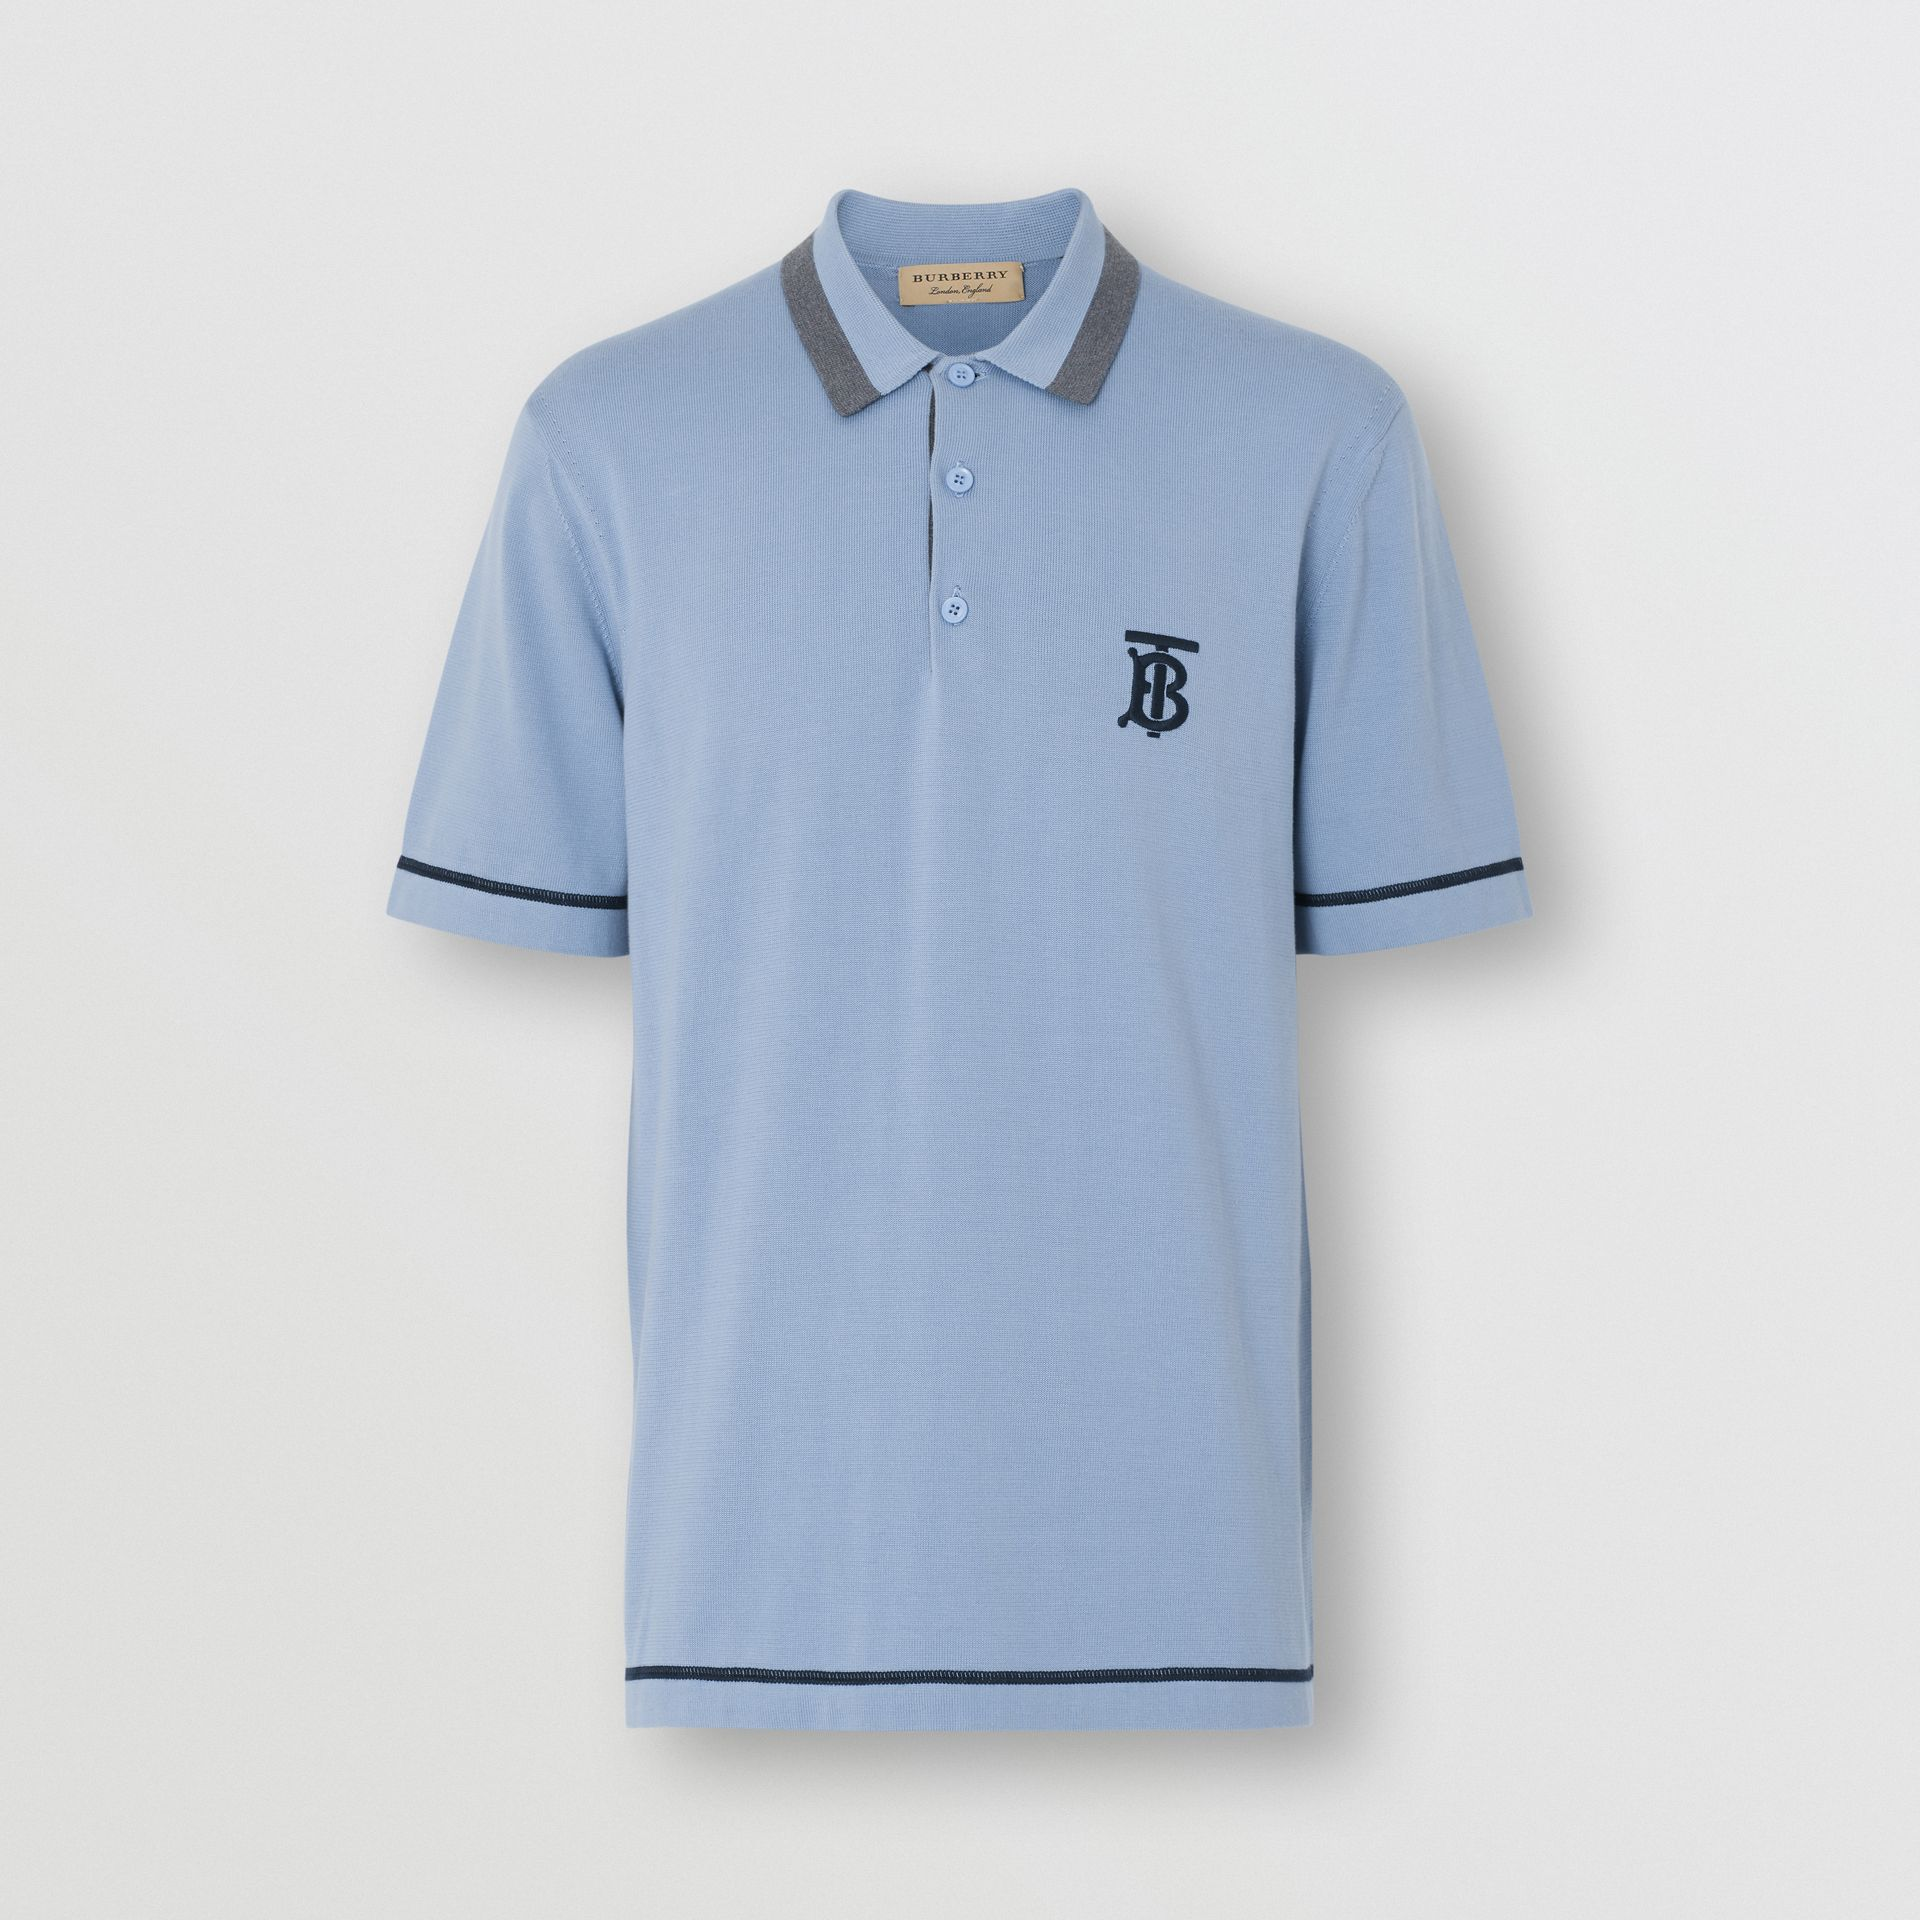 Monogram Motif Tipped Cotton Polo Shirt in Baby Blue - Men | Burberry - gallery image 3